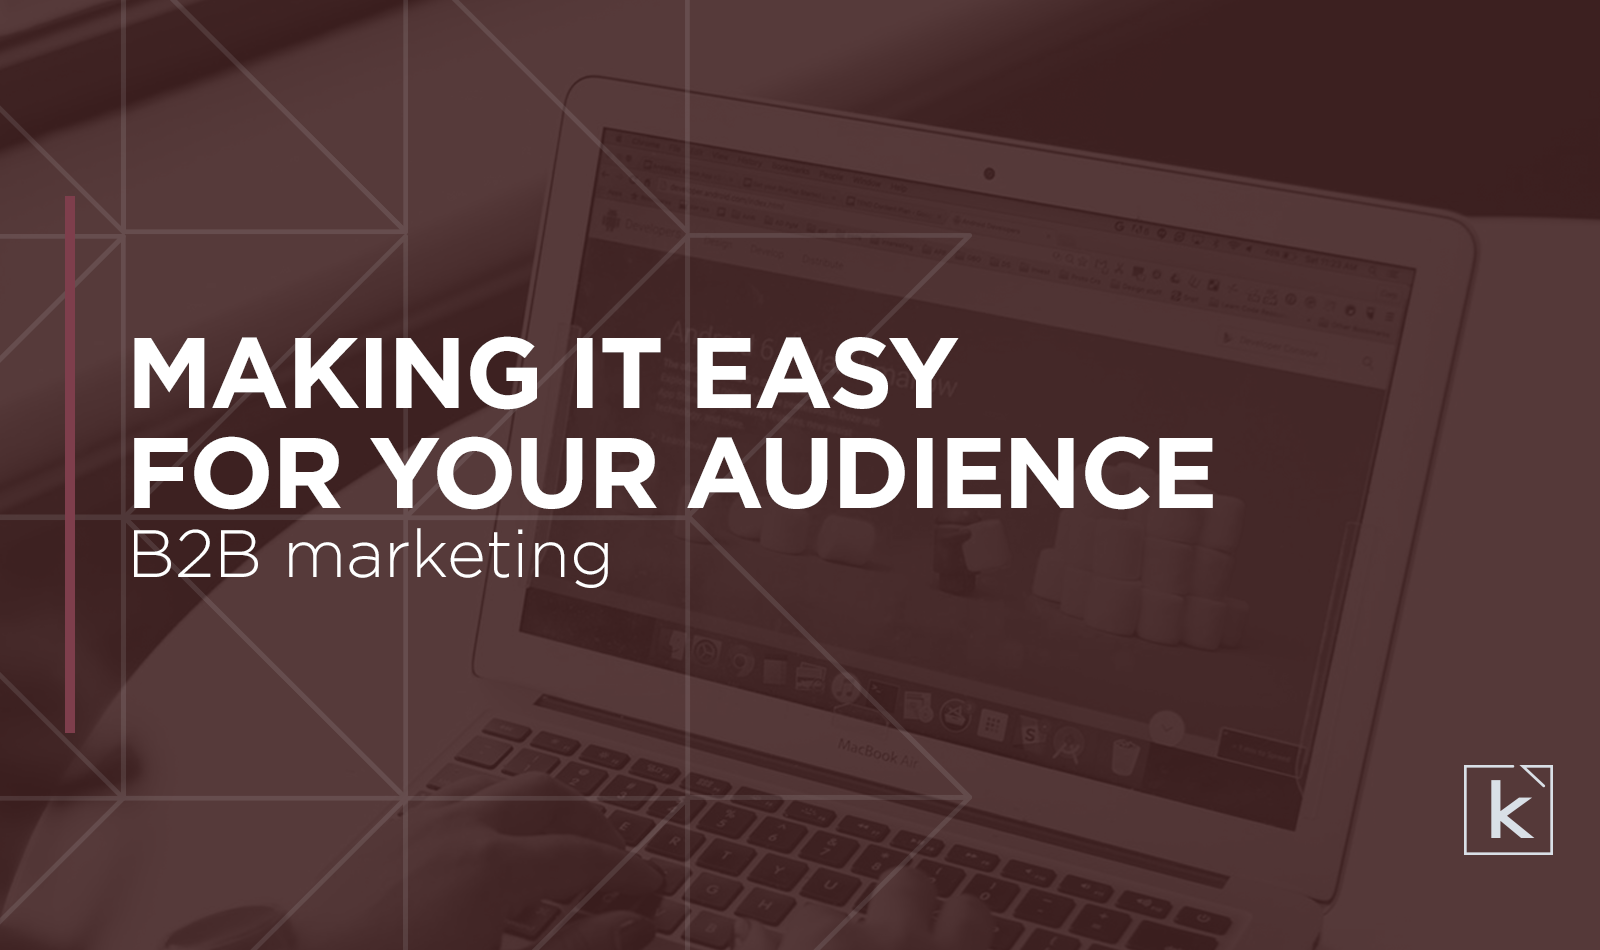 making-it-easy-for-your-audience